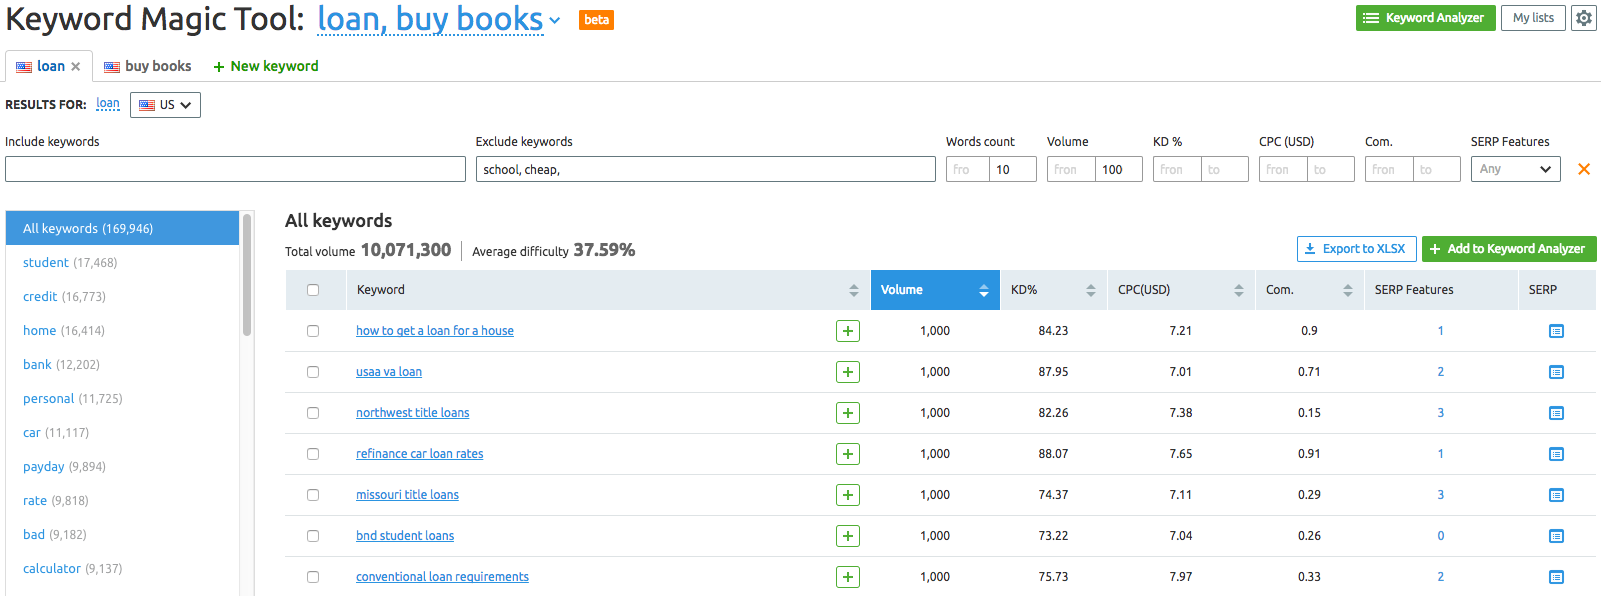 SEMrush: Keyword Magic Tool — Your Final Keyword Research Destination image 2